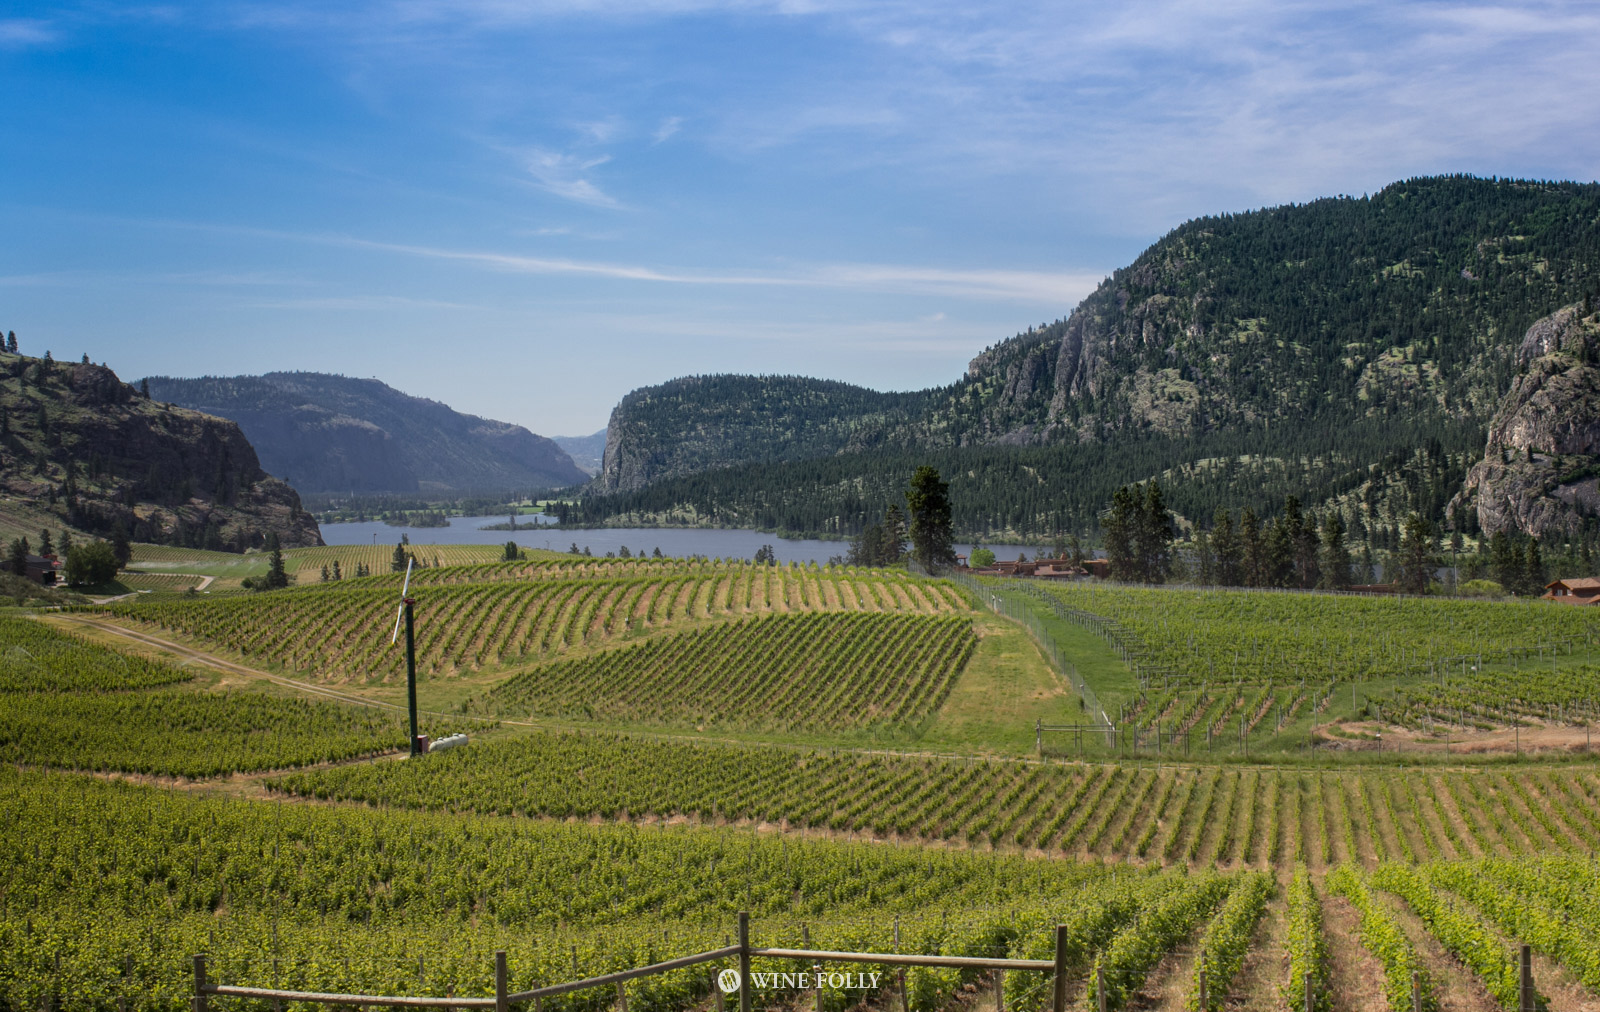 Okanagan Wine Country vineyard view by Wine Folly